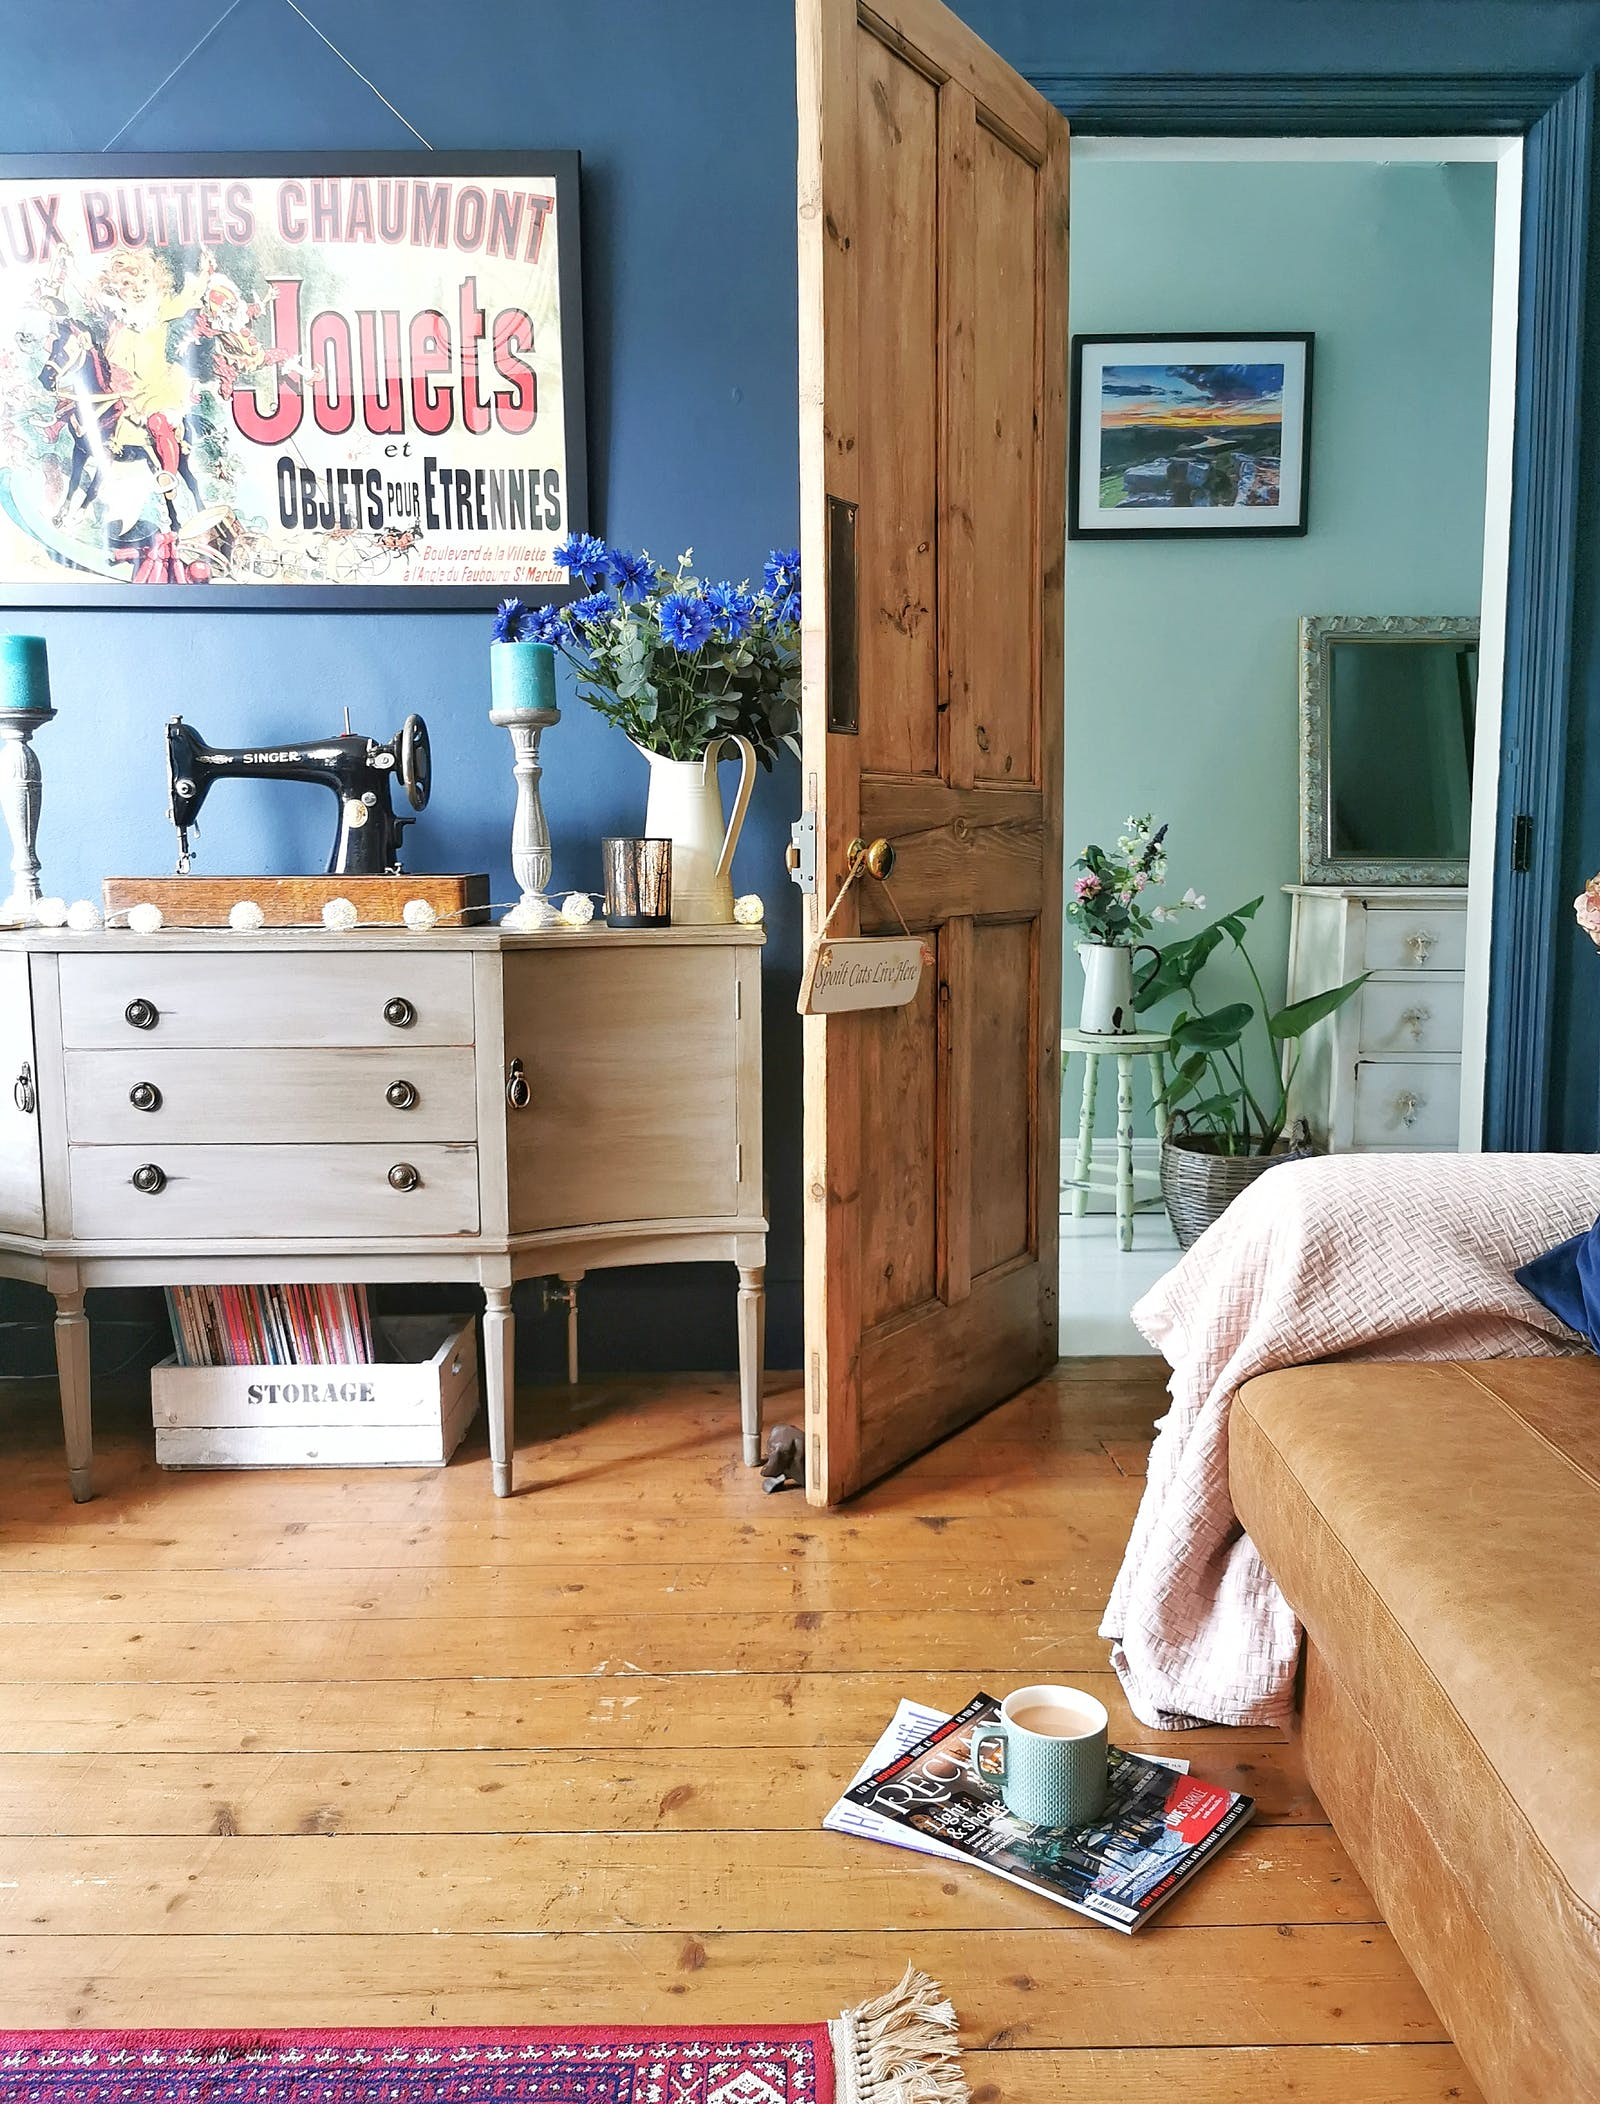 Living room painted in dark blue with vintage furniture, wooden details and vintage poster on the wall